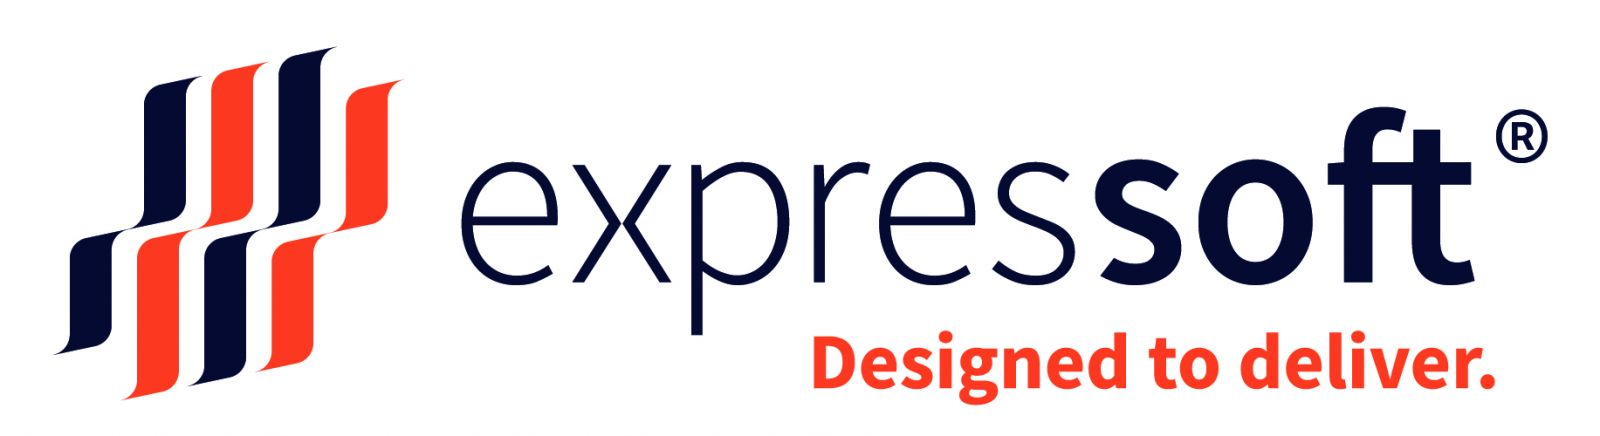 logo expressoft - Designed to deliver.